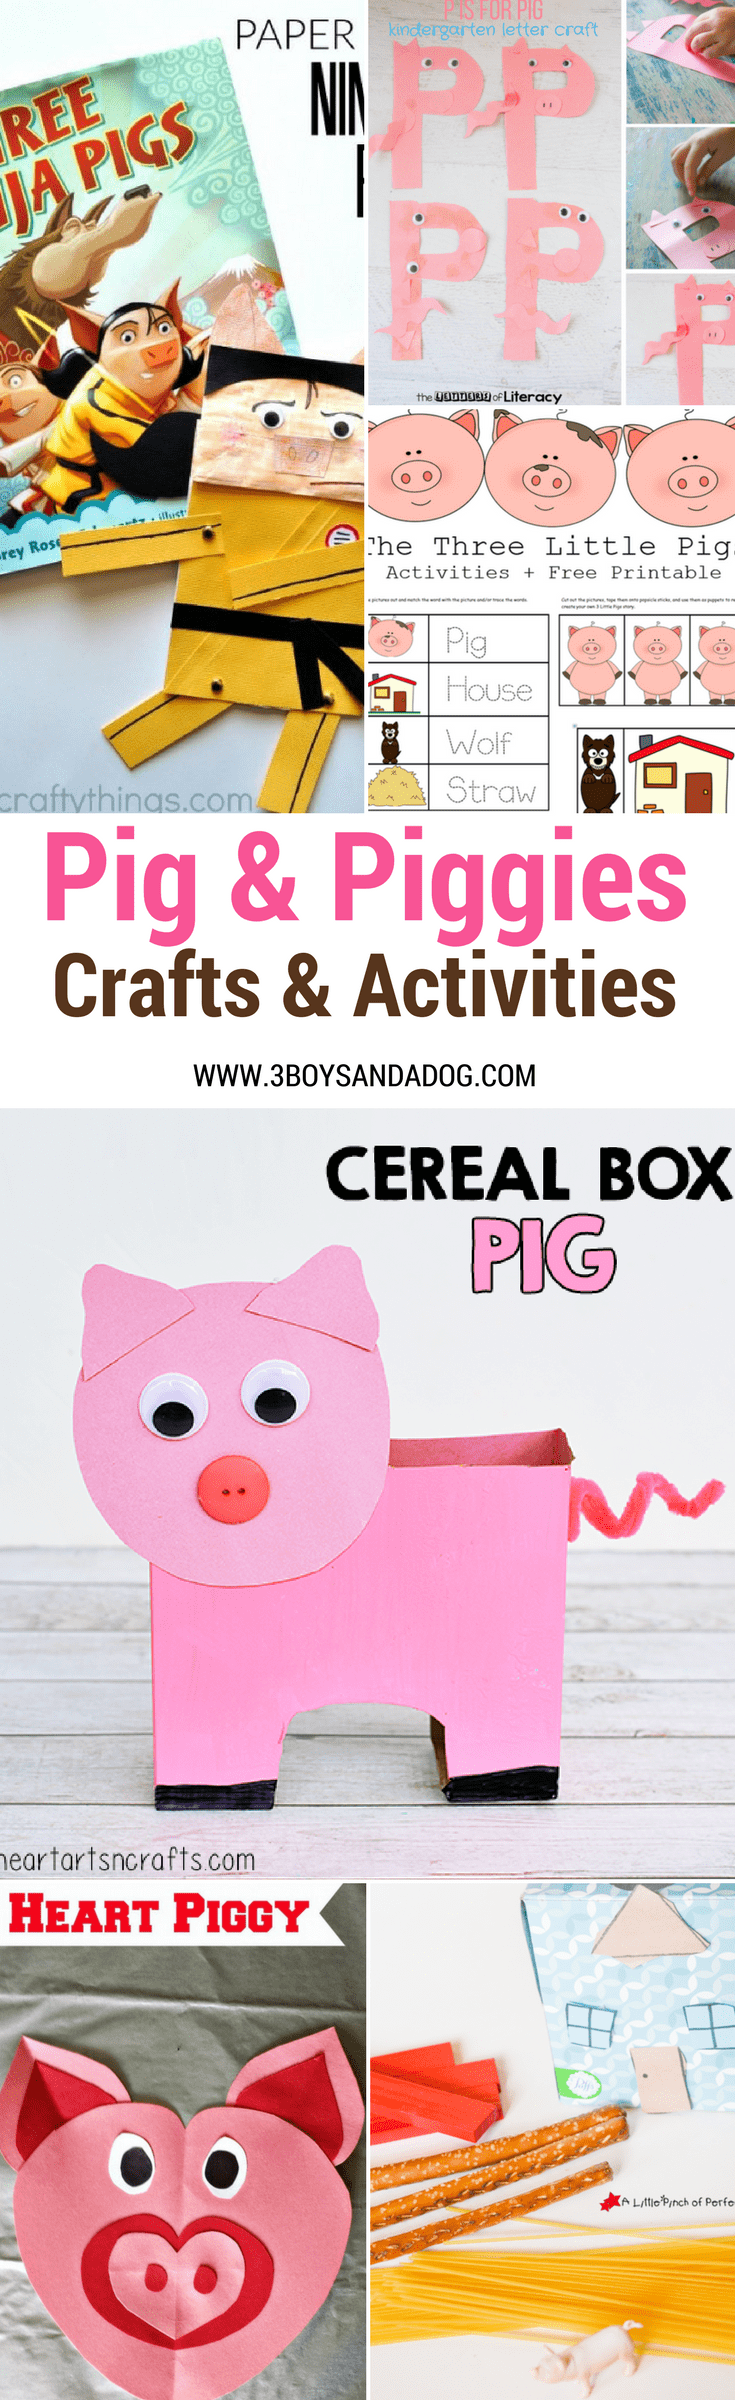 Grab your little one's attention with these fun pig crafts and activities featuring characters from classic pig stories, like Peppa Pig, the Three Little Pigs, and even If You Give a Pig A Pancake! Add these to help your little one learn math, grammar, art, and STEM!